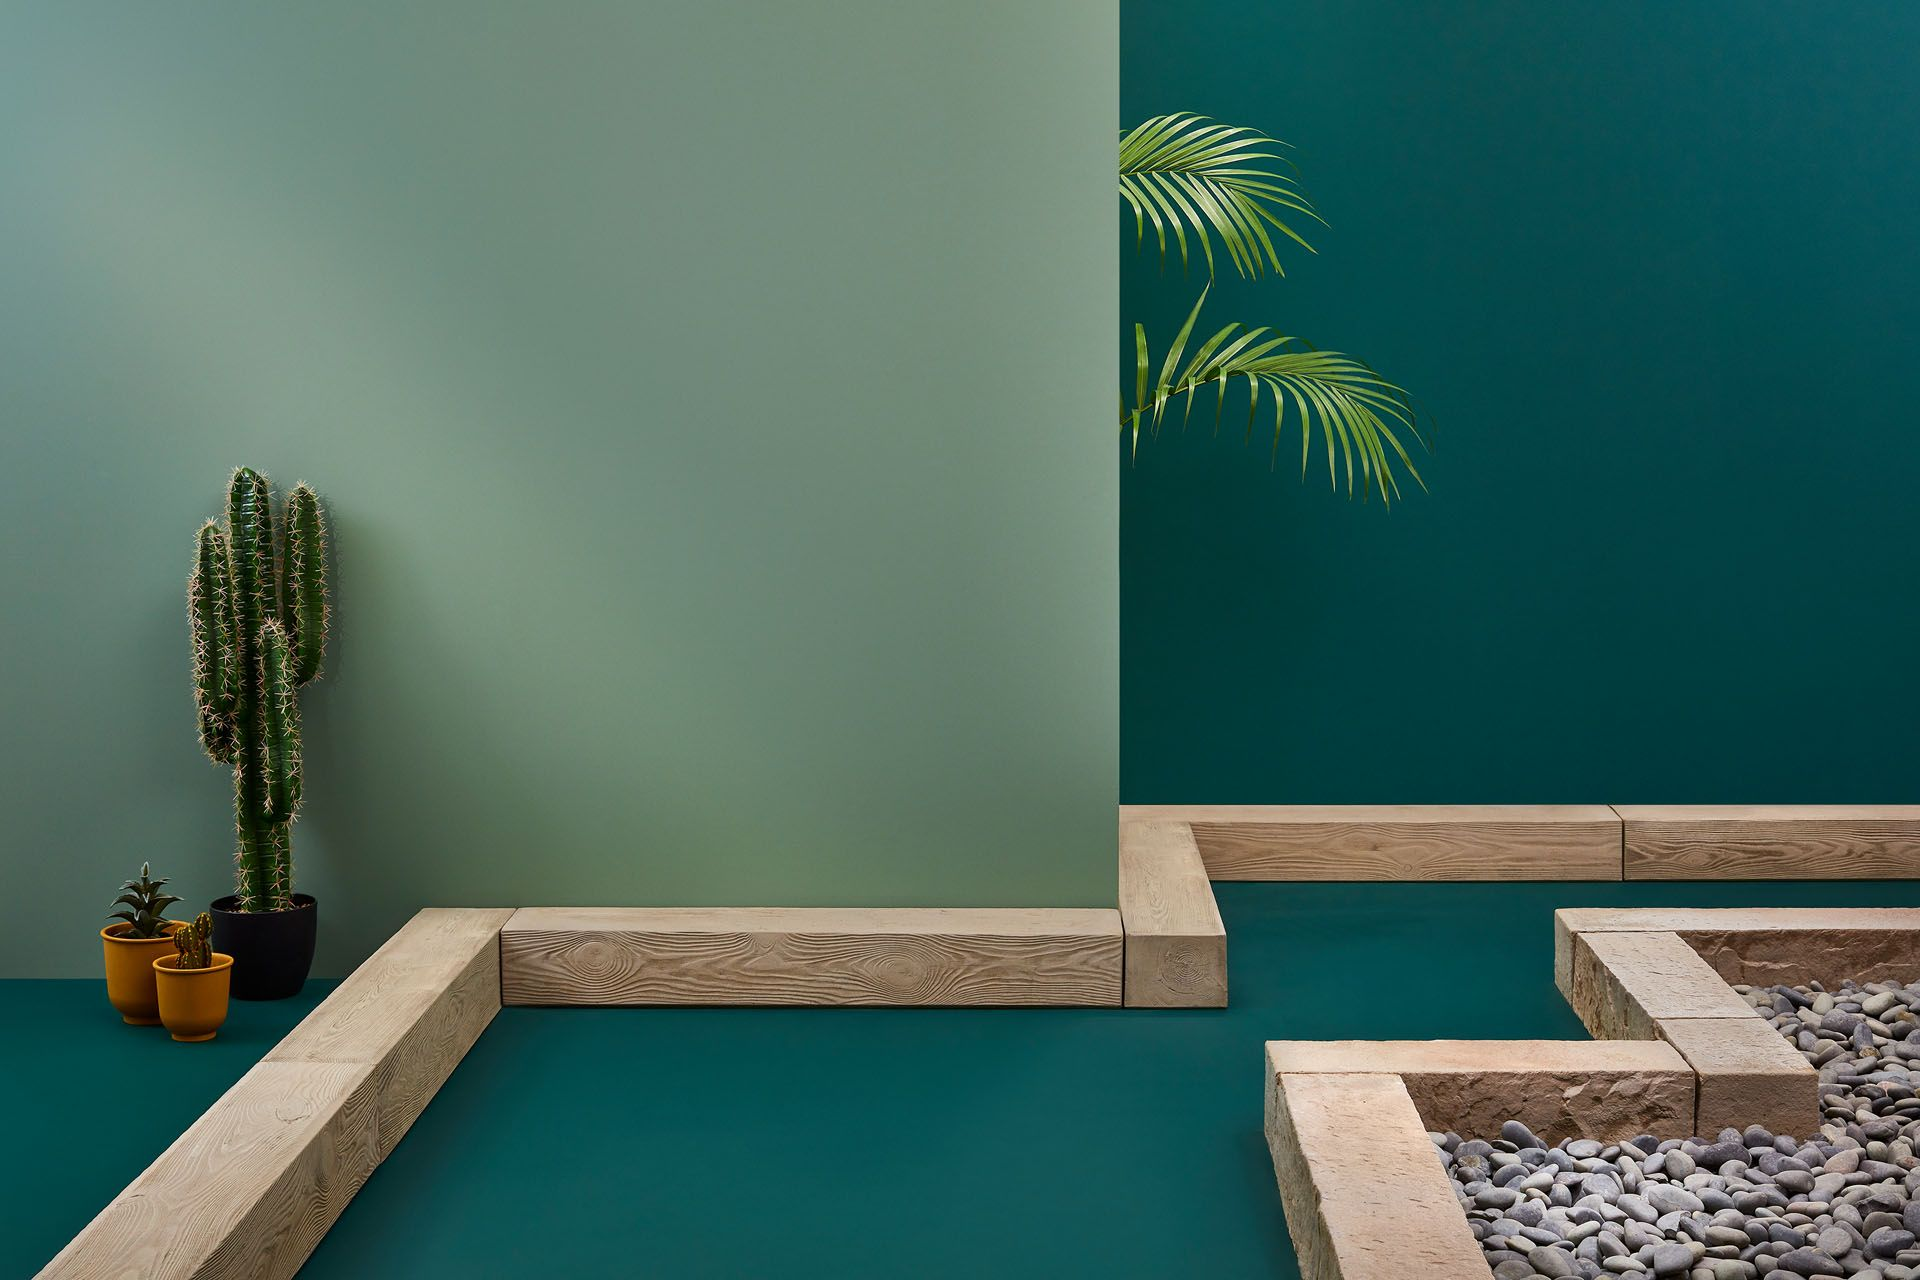 green ambiance with river stones and cactus by Mathieu Levesque for Techo Bloc